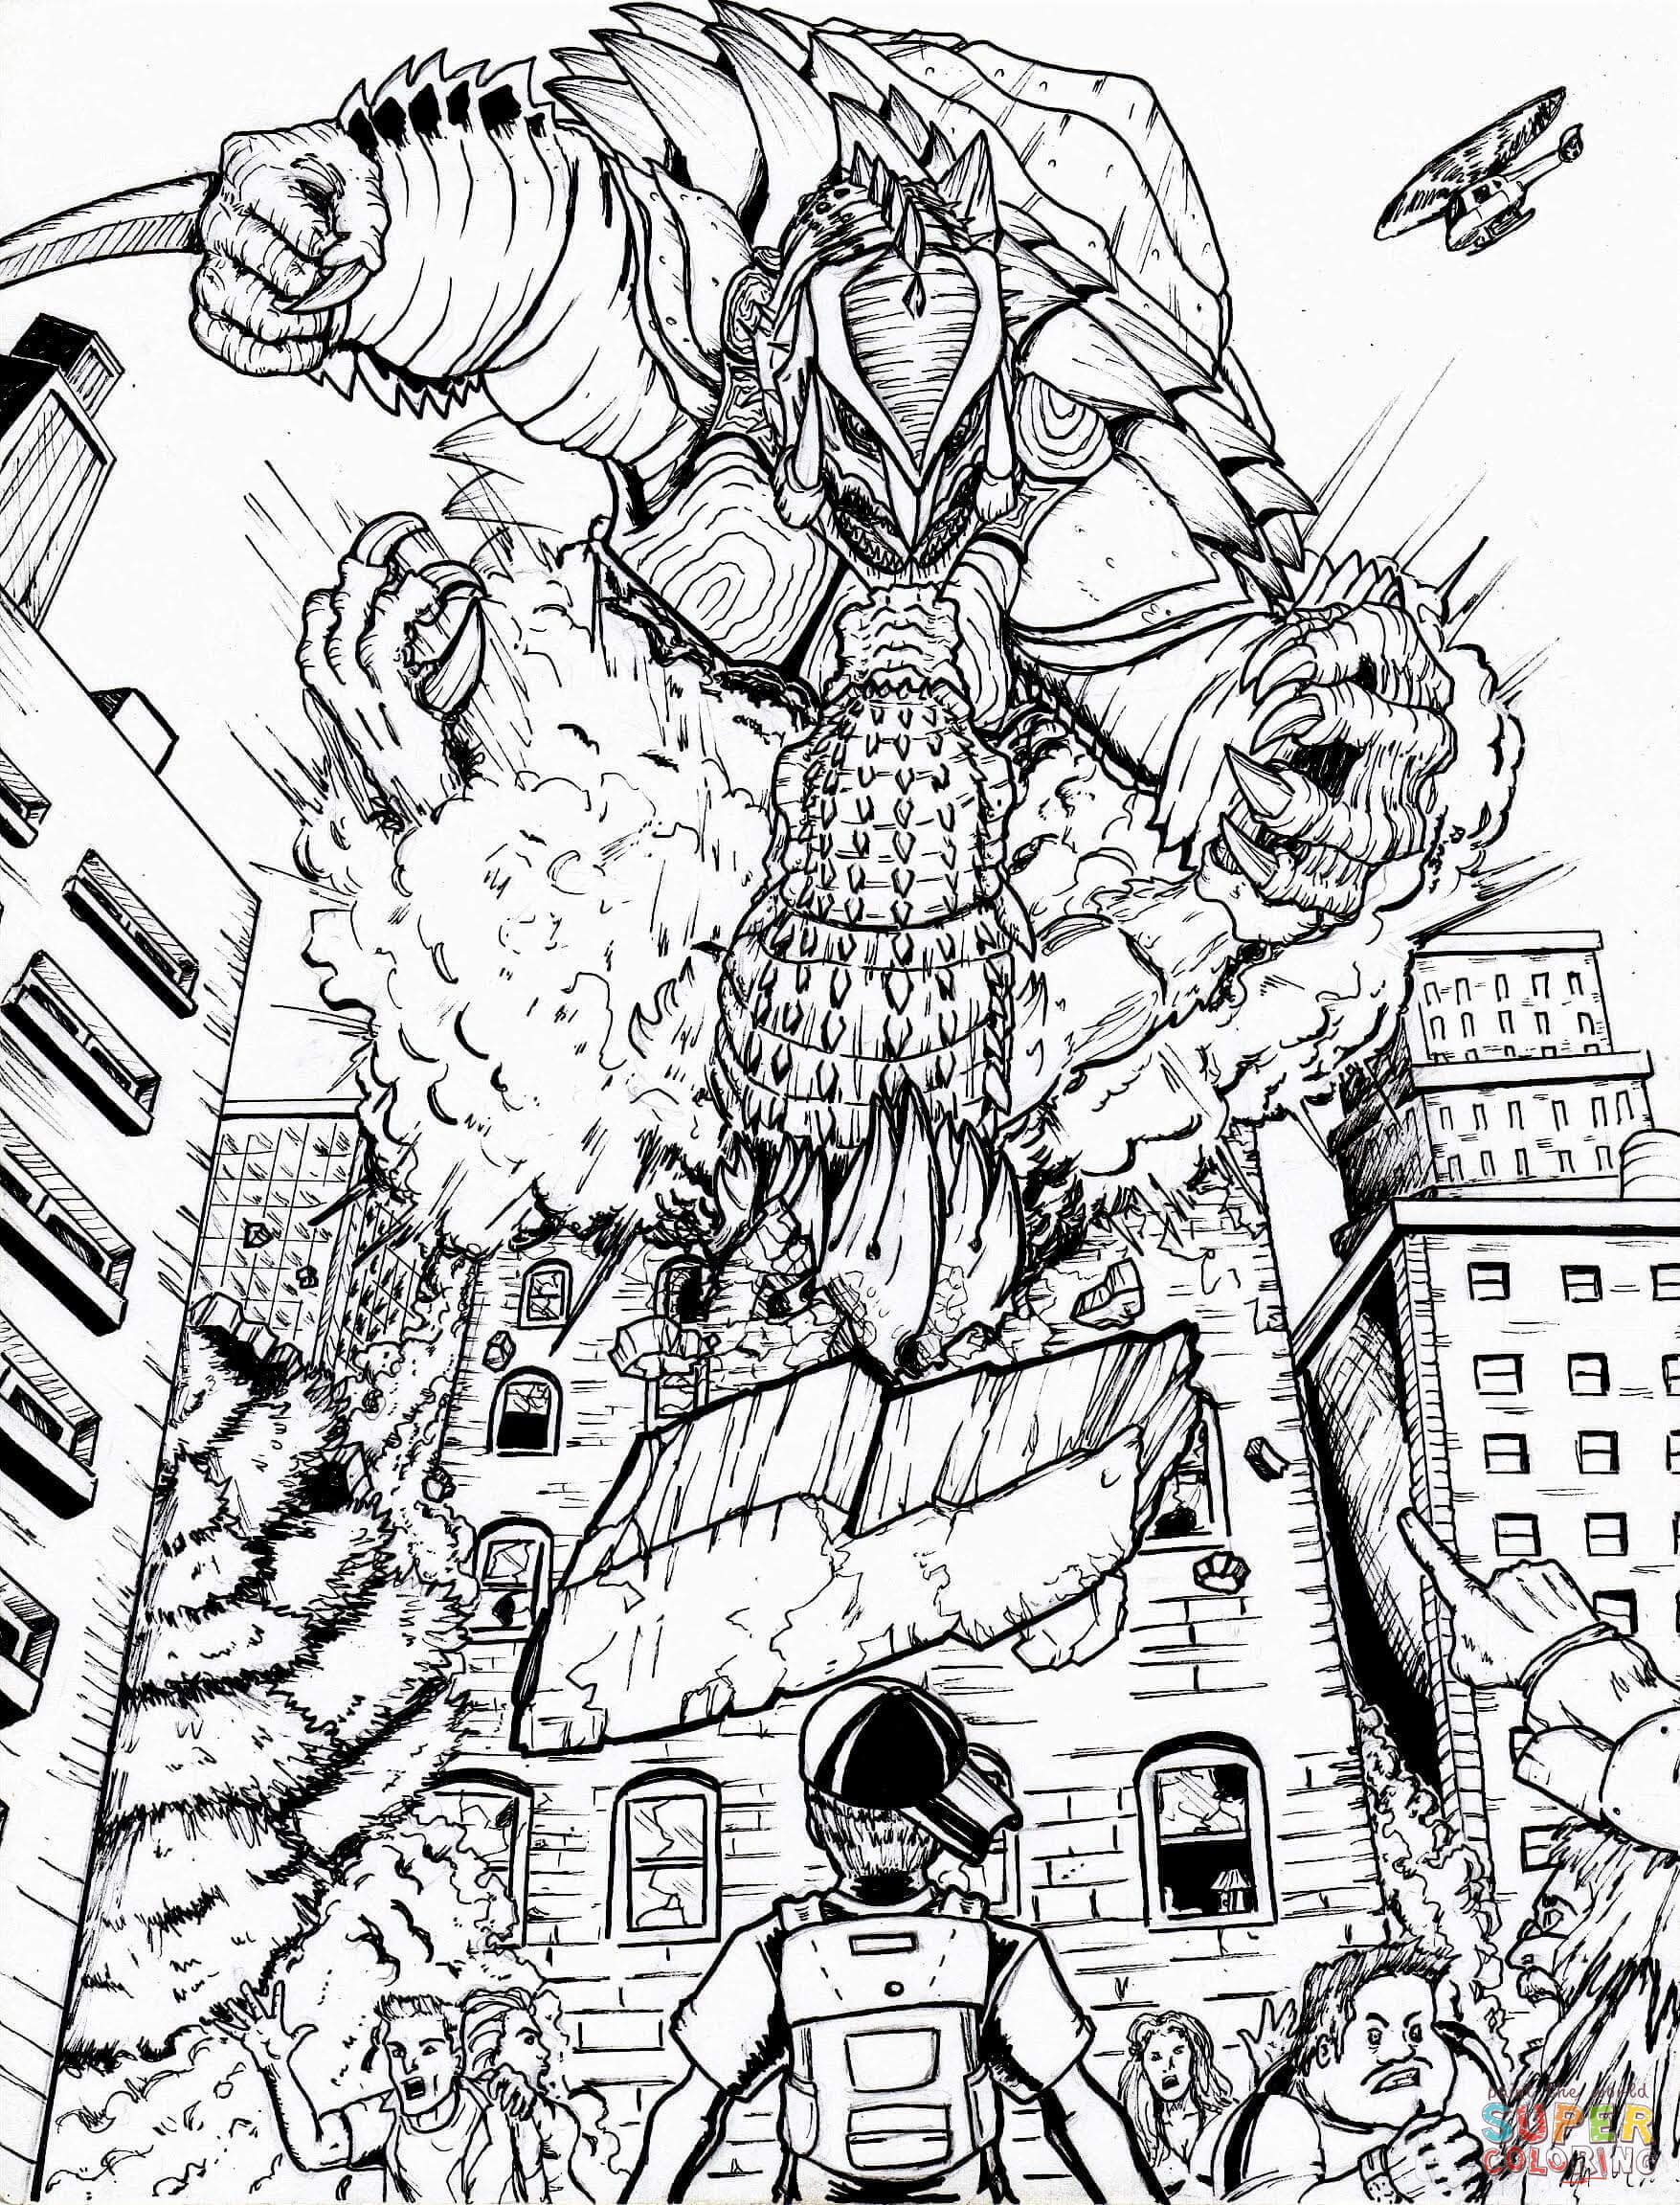 High Quality Free Coloring Pages Download : Rdc Super Godzilla Coloring Page Free  Printable Coloring Pages Of Godzilla